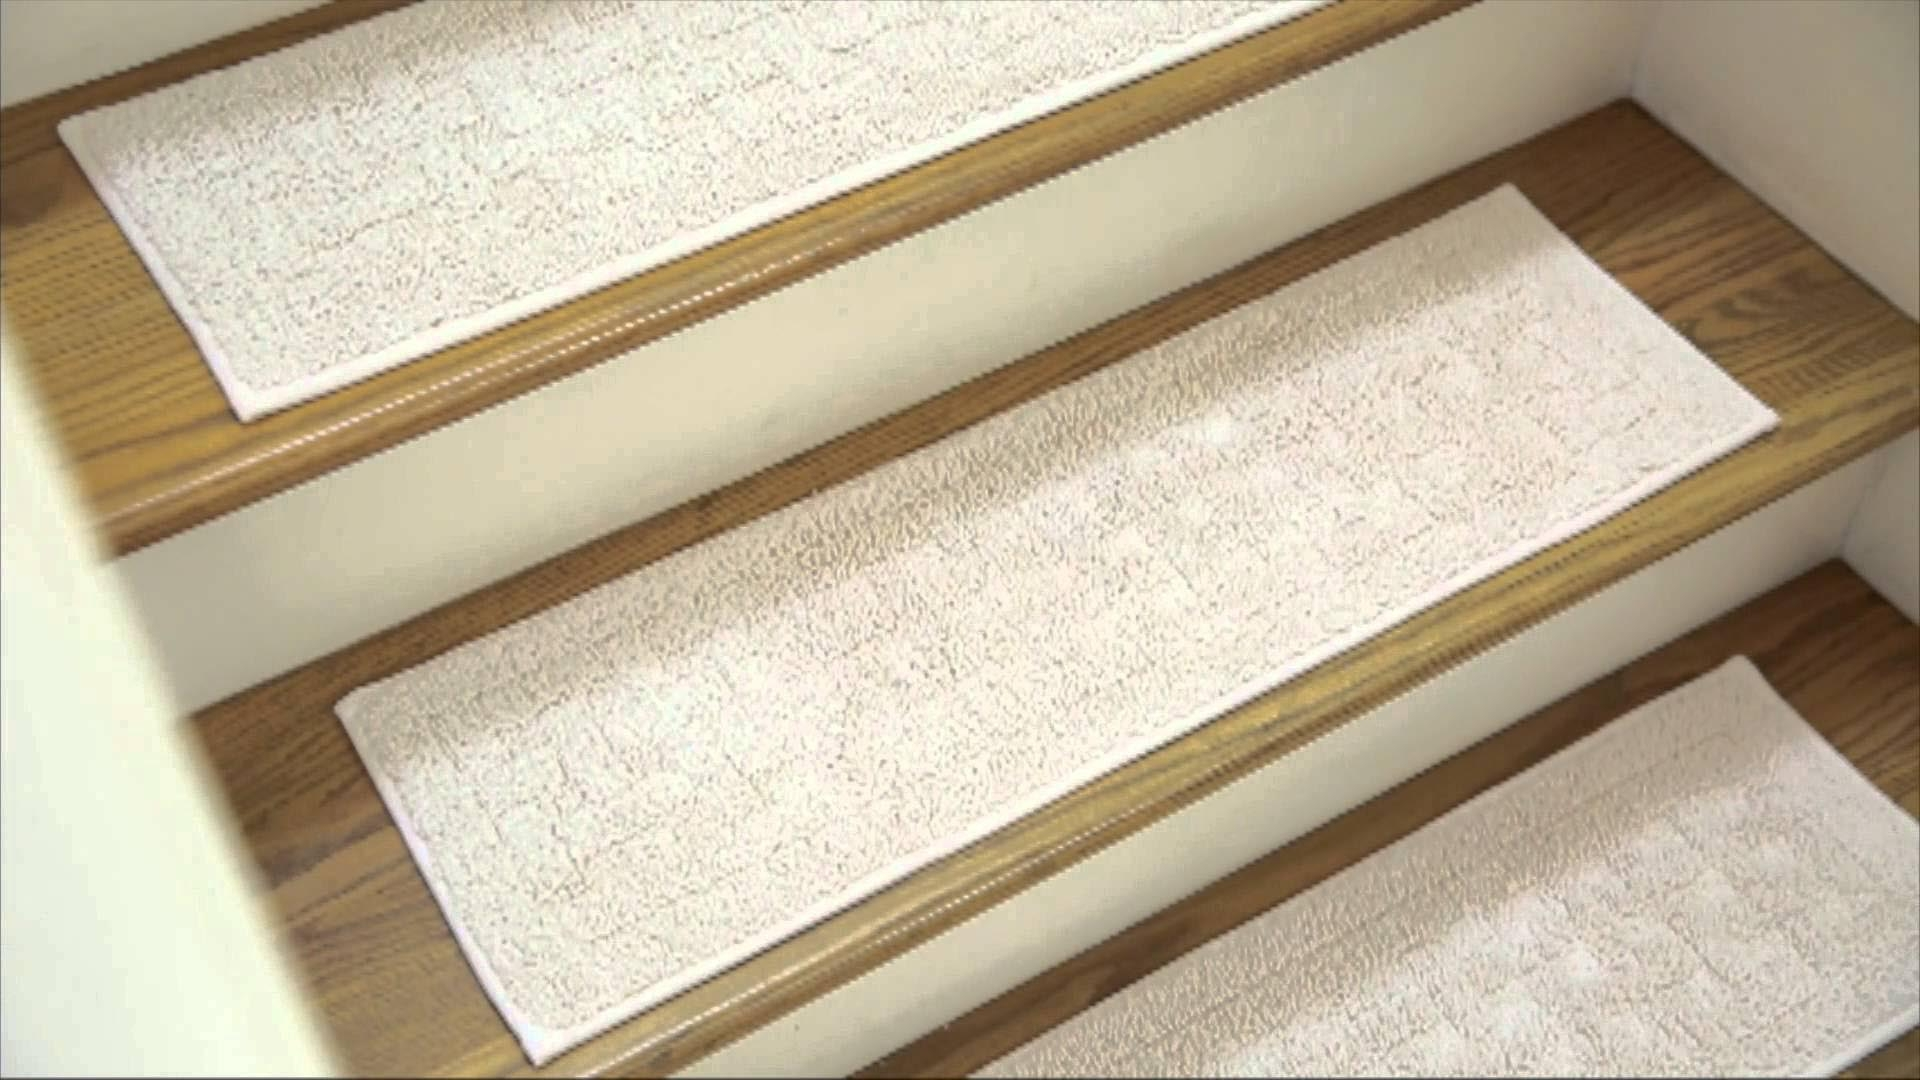 Stair Treads Carpet Tiles Best Decor Things With Stair Tread Carpet Tiles (Image 15 of 15)